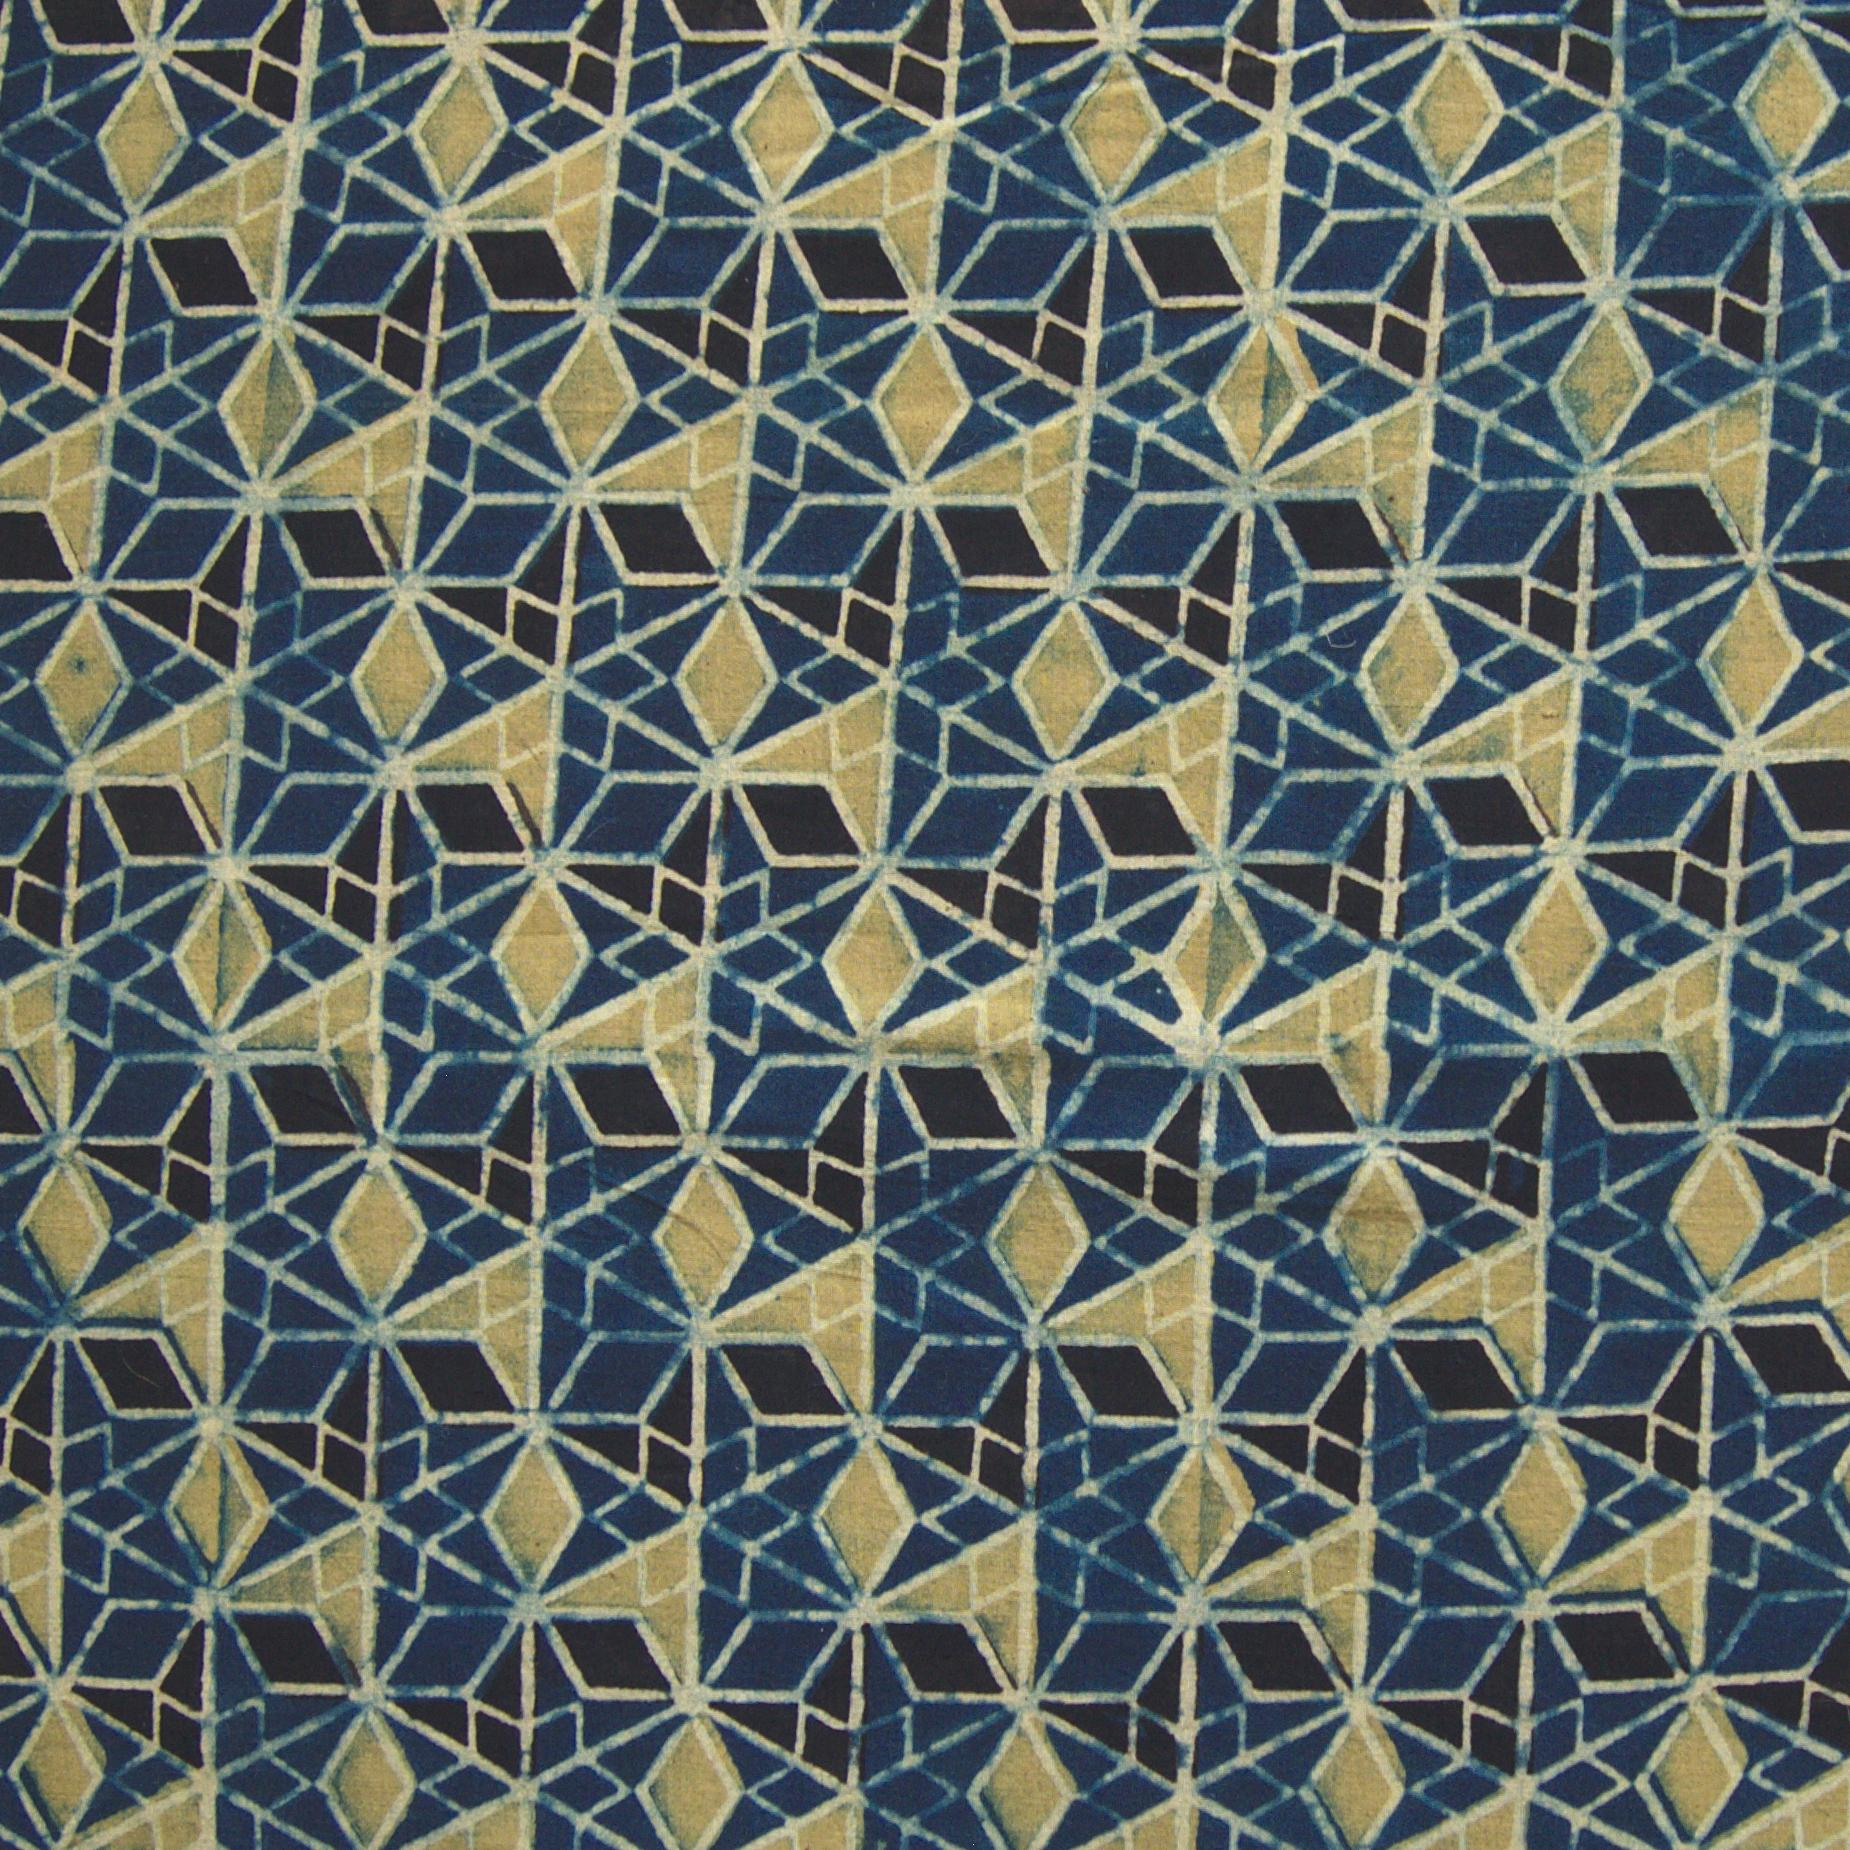 Block Printed Fabric, 100% Cotton, Ajrak Design: Blue Base, Black, Lime Wing. Close Up